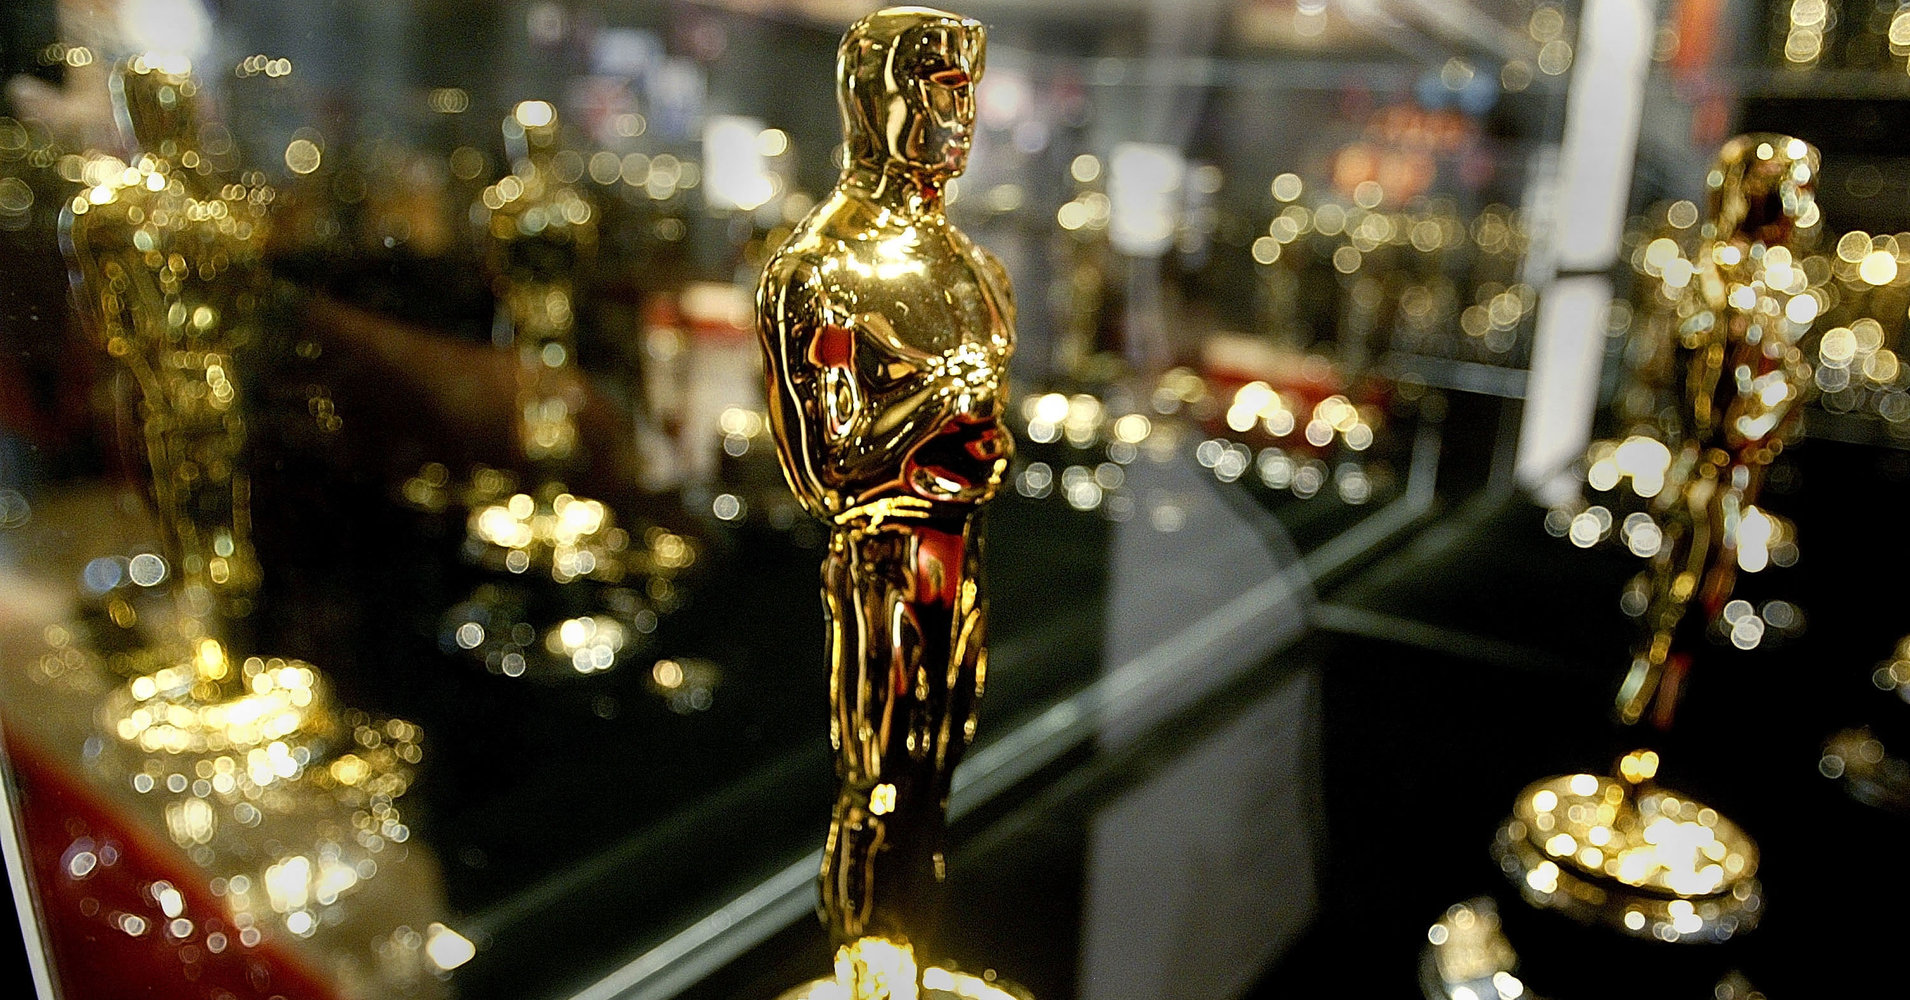 7 Facts About The Oscars You Probably Don't Know